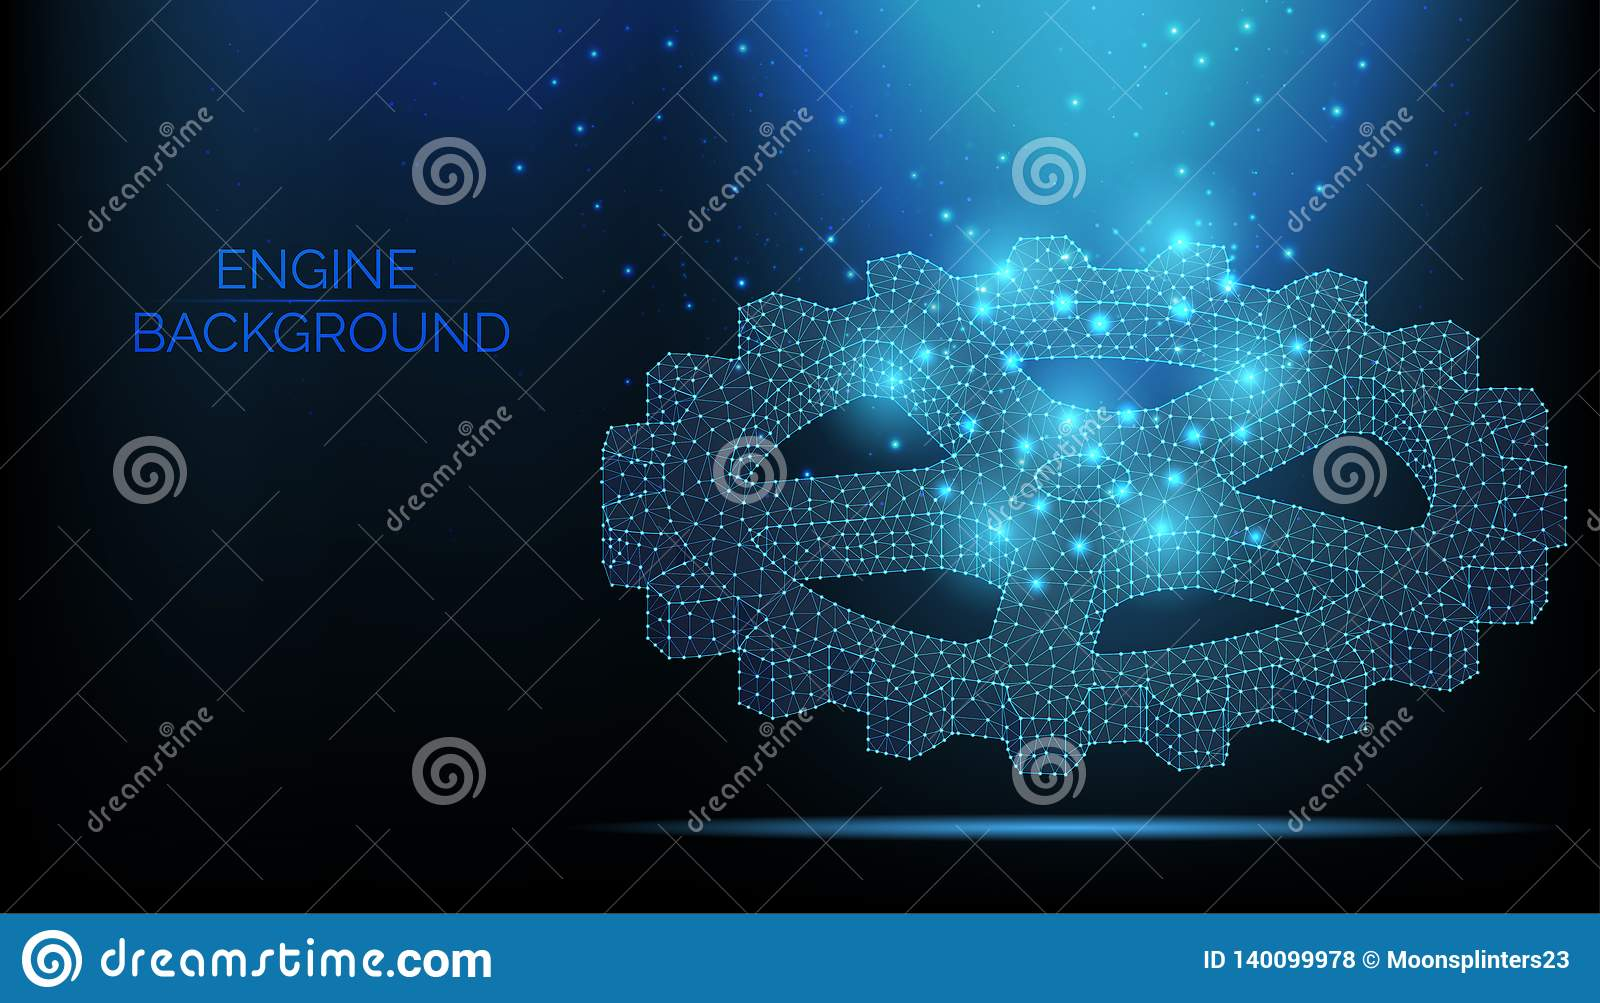 Gear on dark blue background. Teamwork Symbol. Engine work